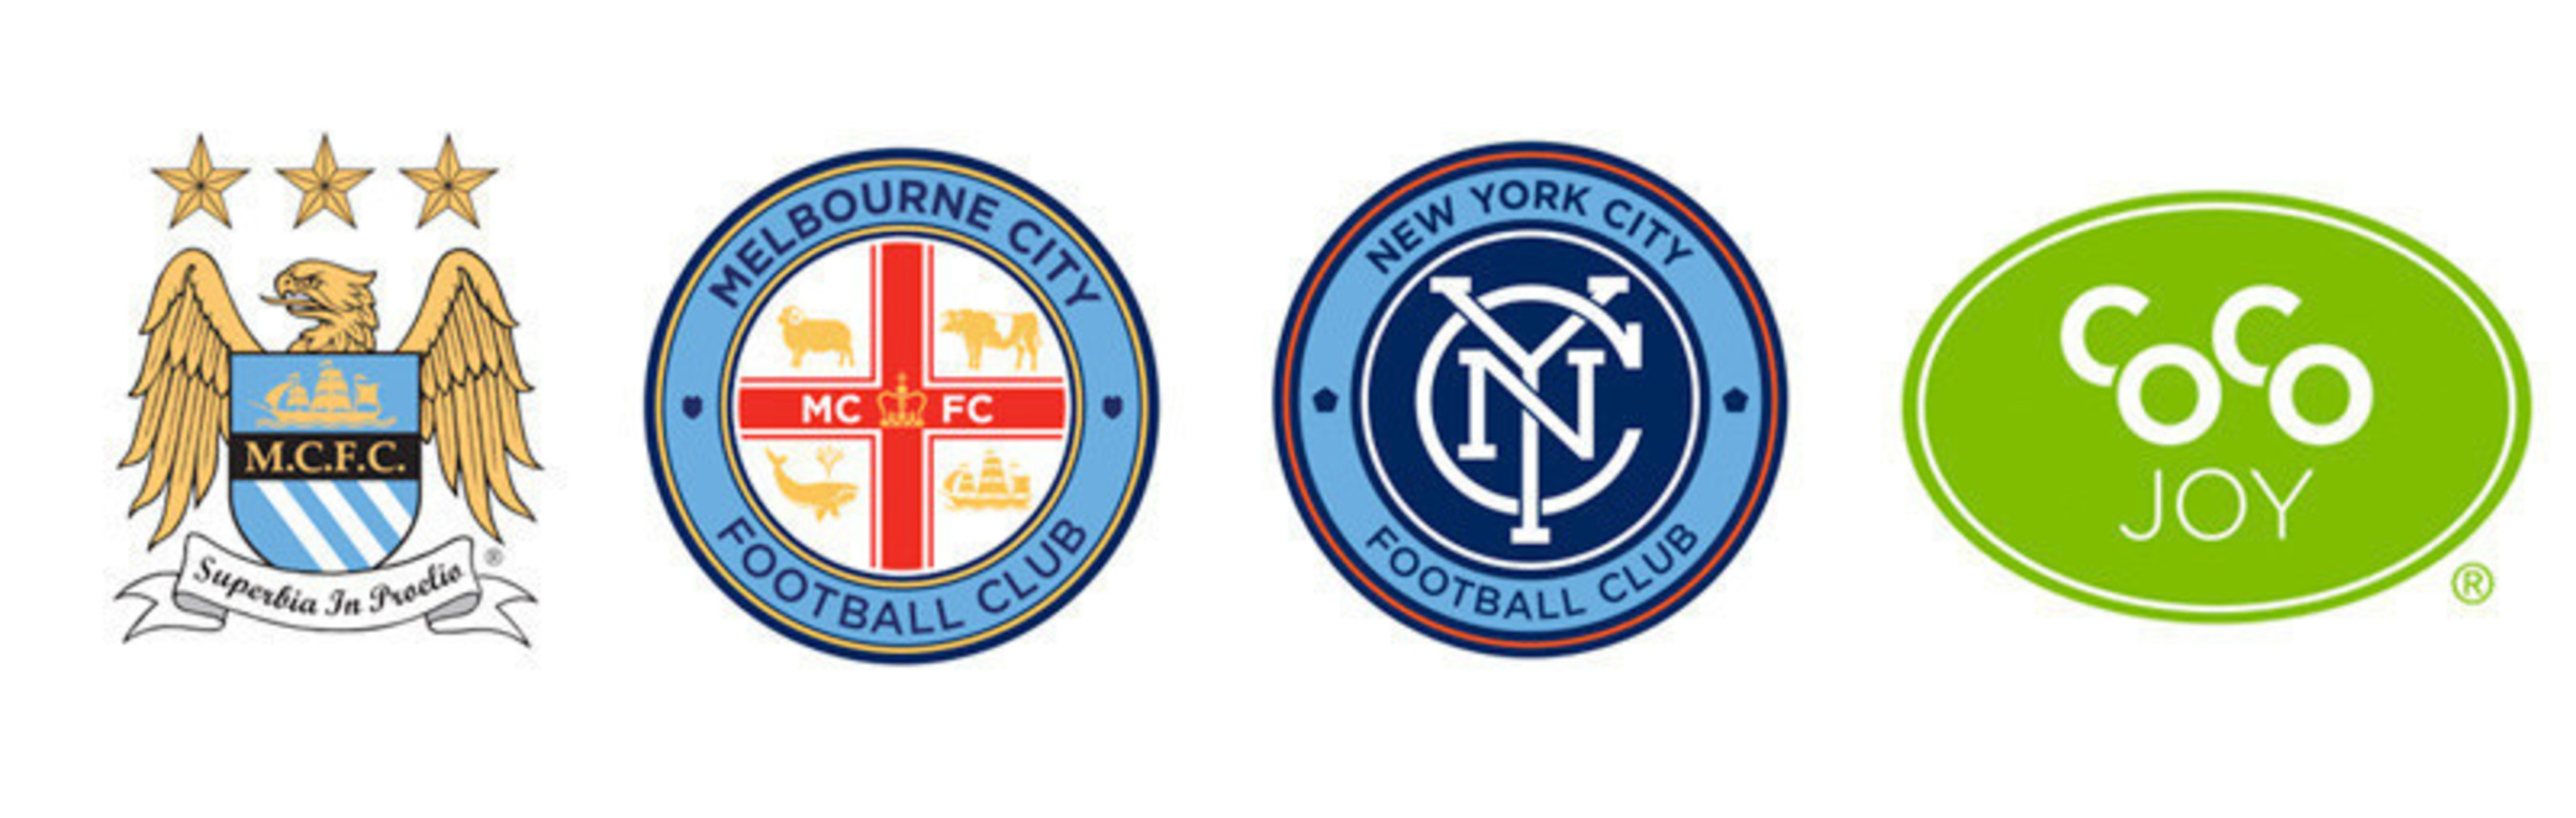 Coco Joy Partners With New York City Football Club As Part Of Global Partnership With City Football Group Clubs